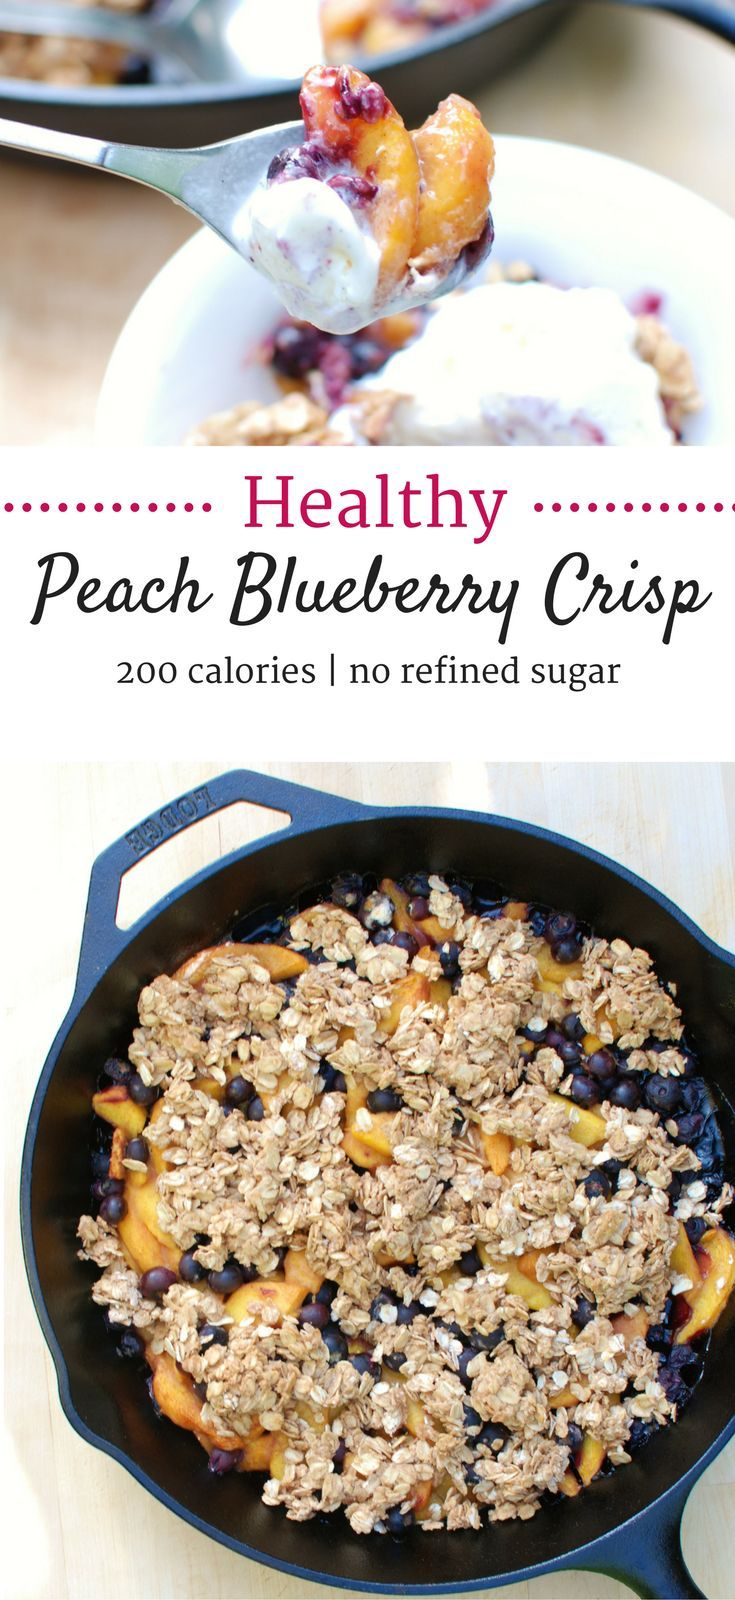 This healthy peach blueberry crisp is a skillet dessert that is sure to please!  Made with no refined sugar (it's sweetened with maple syrup!) and lightened up considerably from traditional versions for a 200 calorie treat. | healthy blueberry crisp | hea